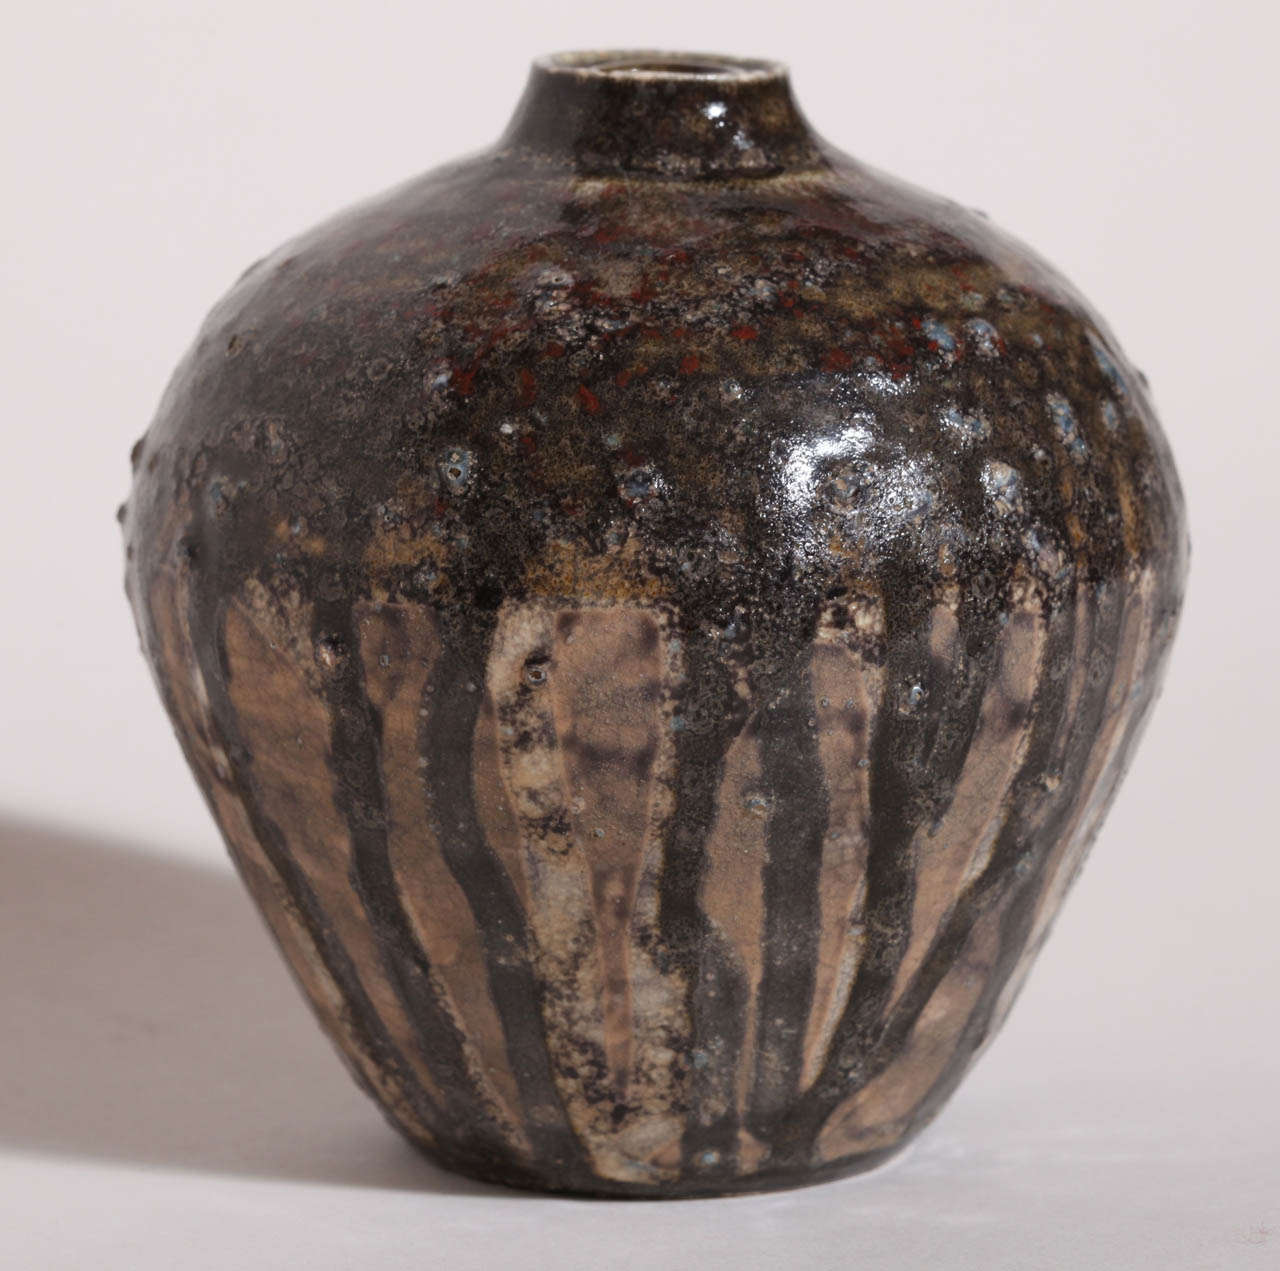 Henri Simmen French Art Deco Small Stoneware Vase For Sale 2